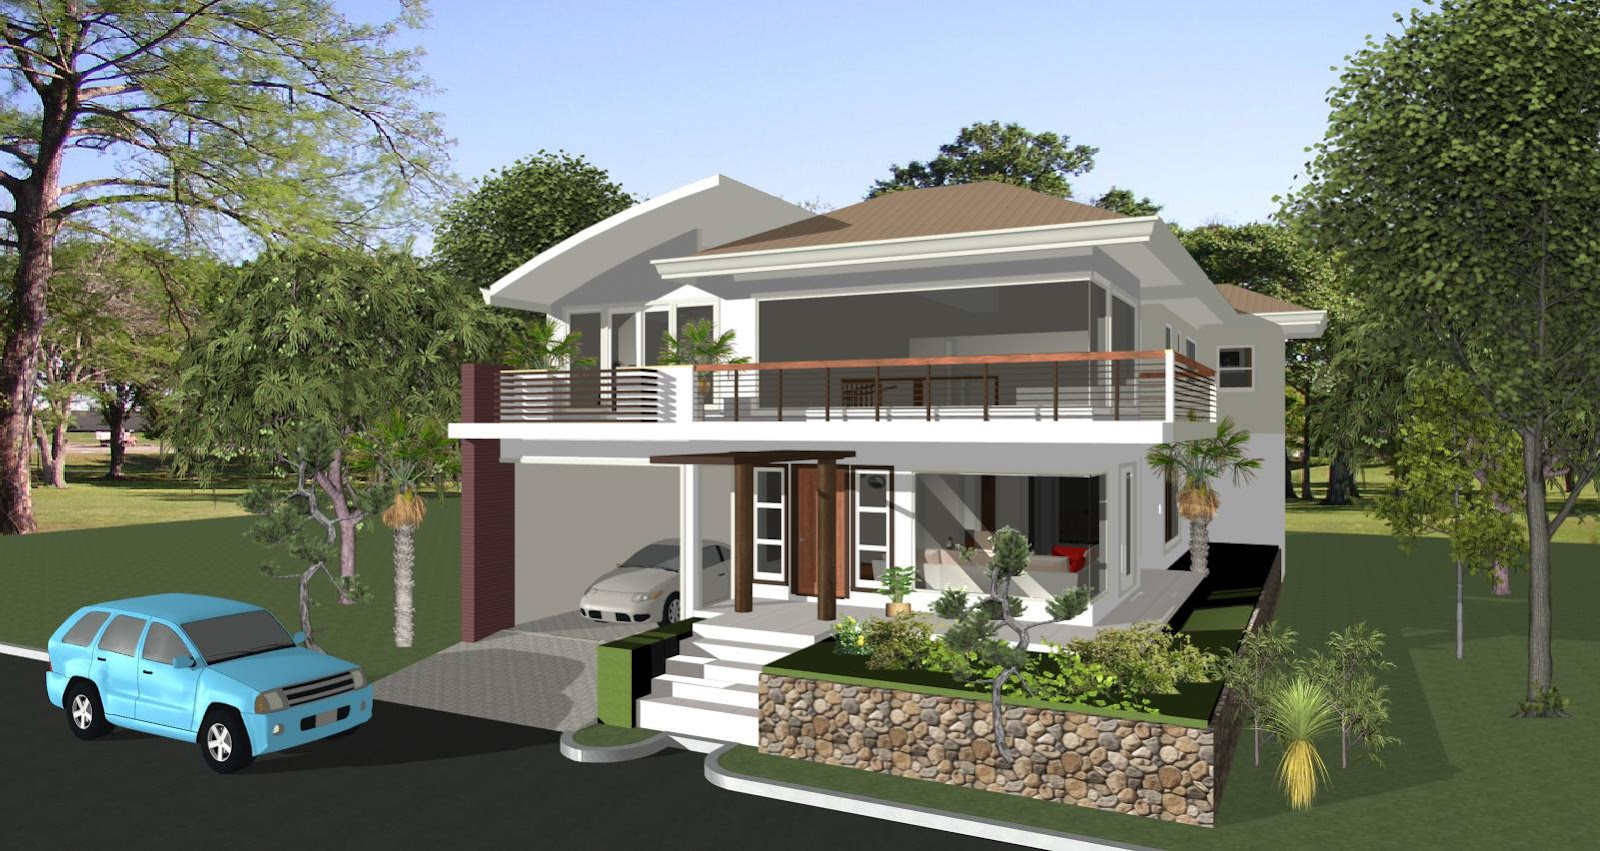 House designs philippines architect bill house plans for House garage design philippines